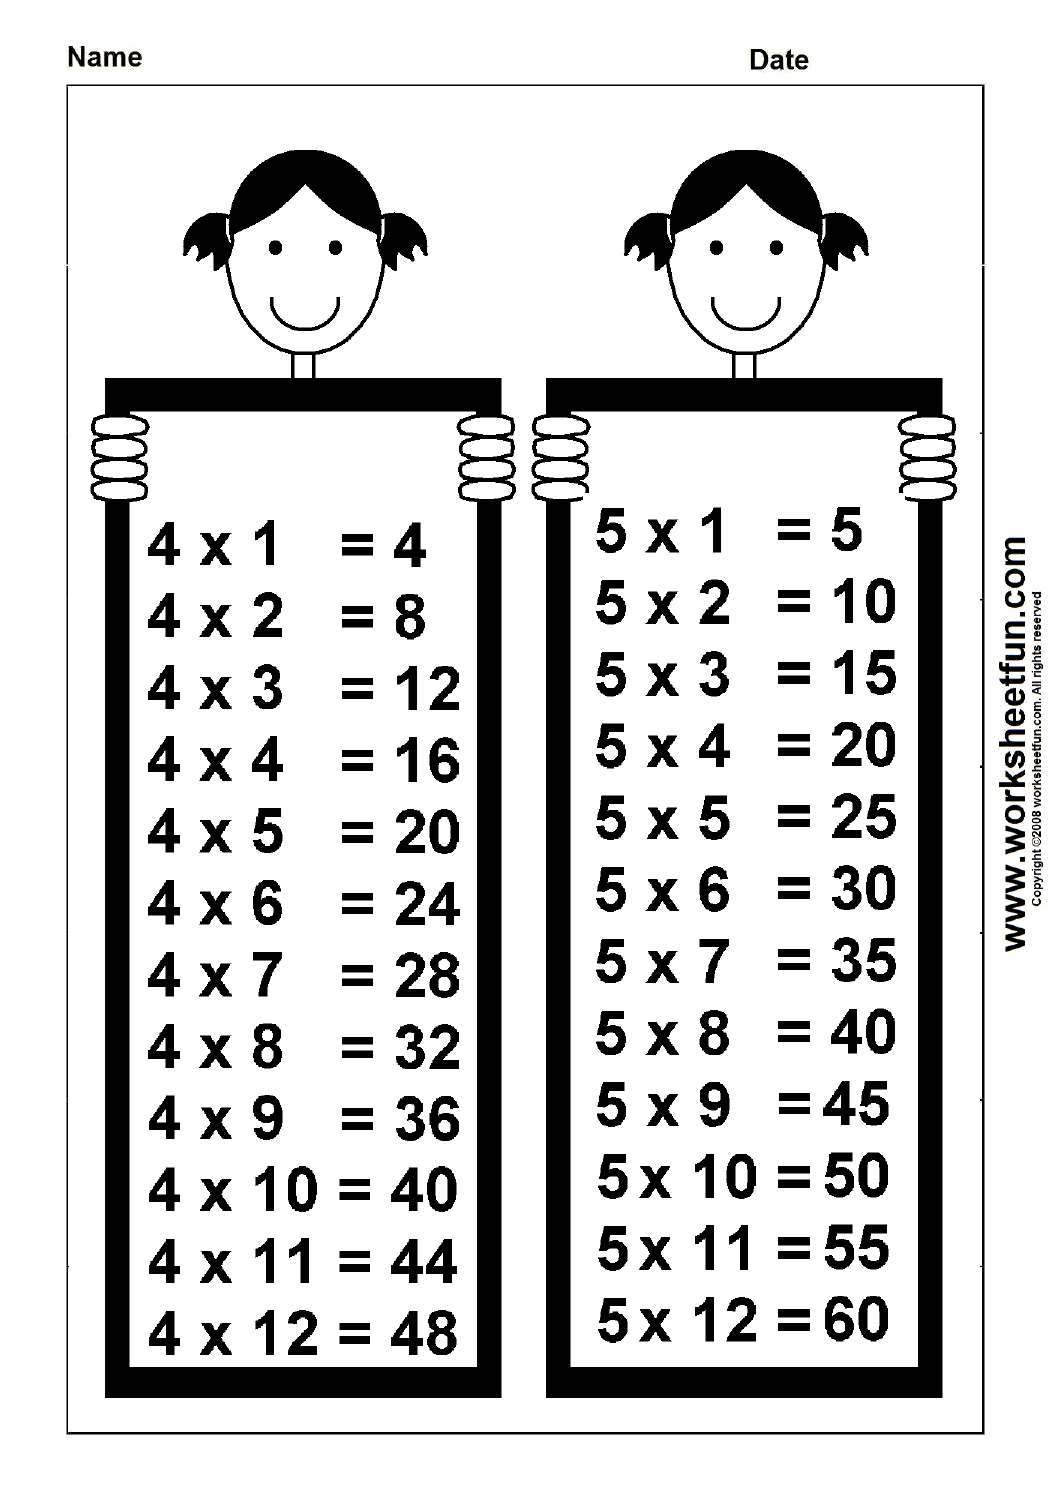 Times Table Chart 4 Amp 5 Worksheets Lots Of Great Teaching Materials In All Subjects